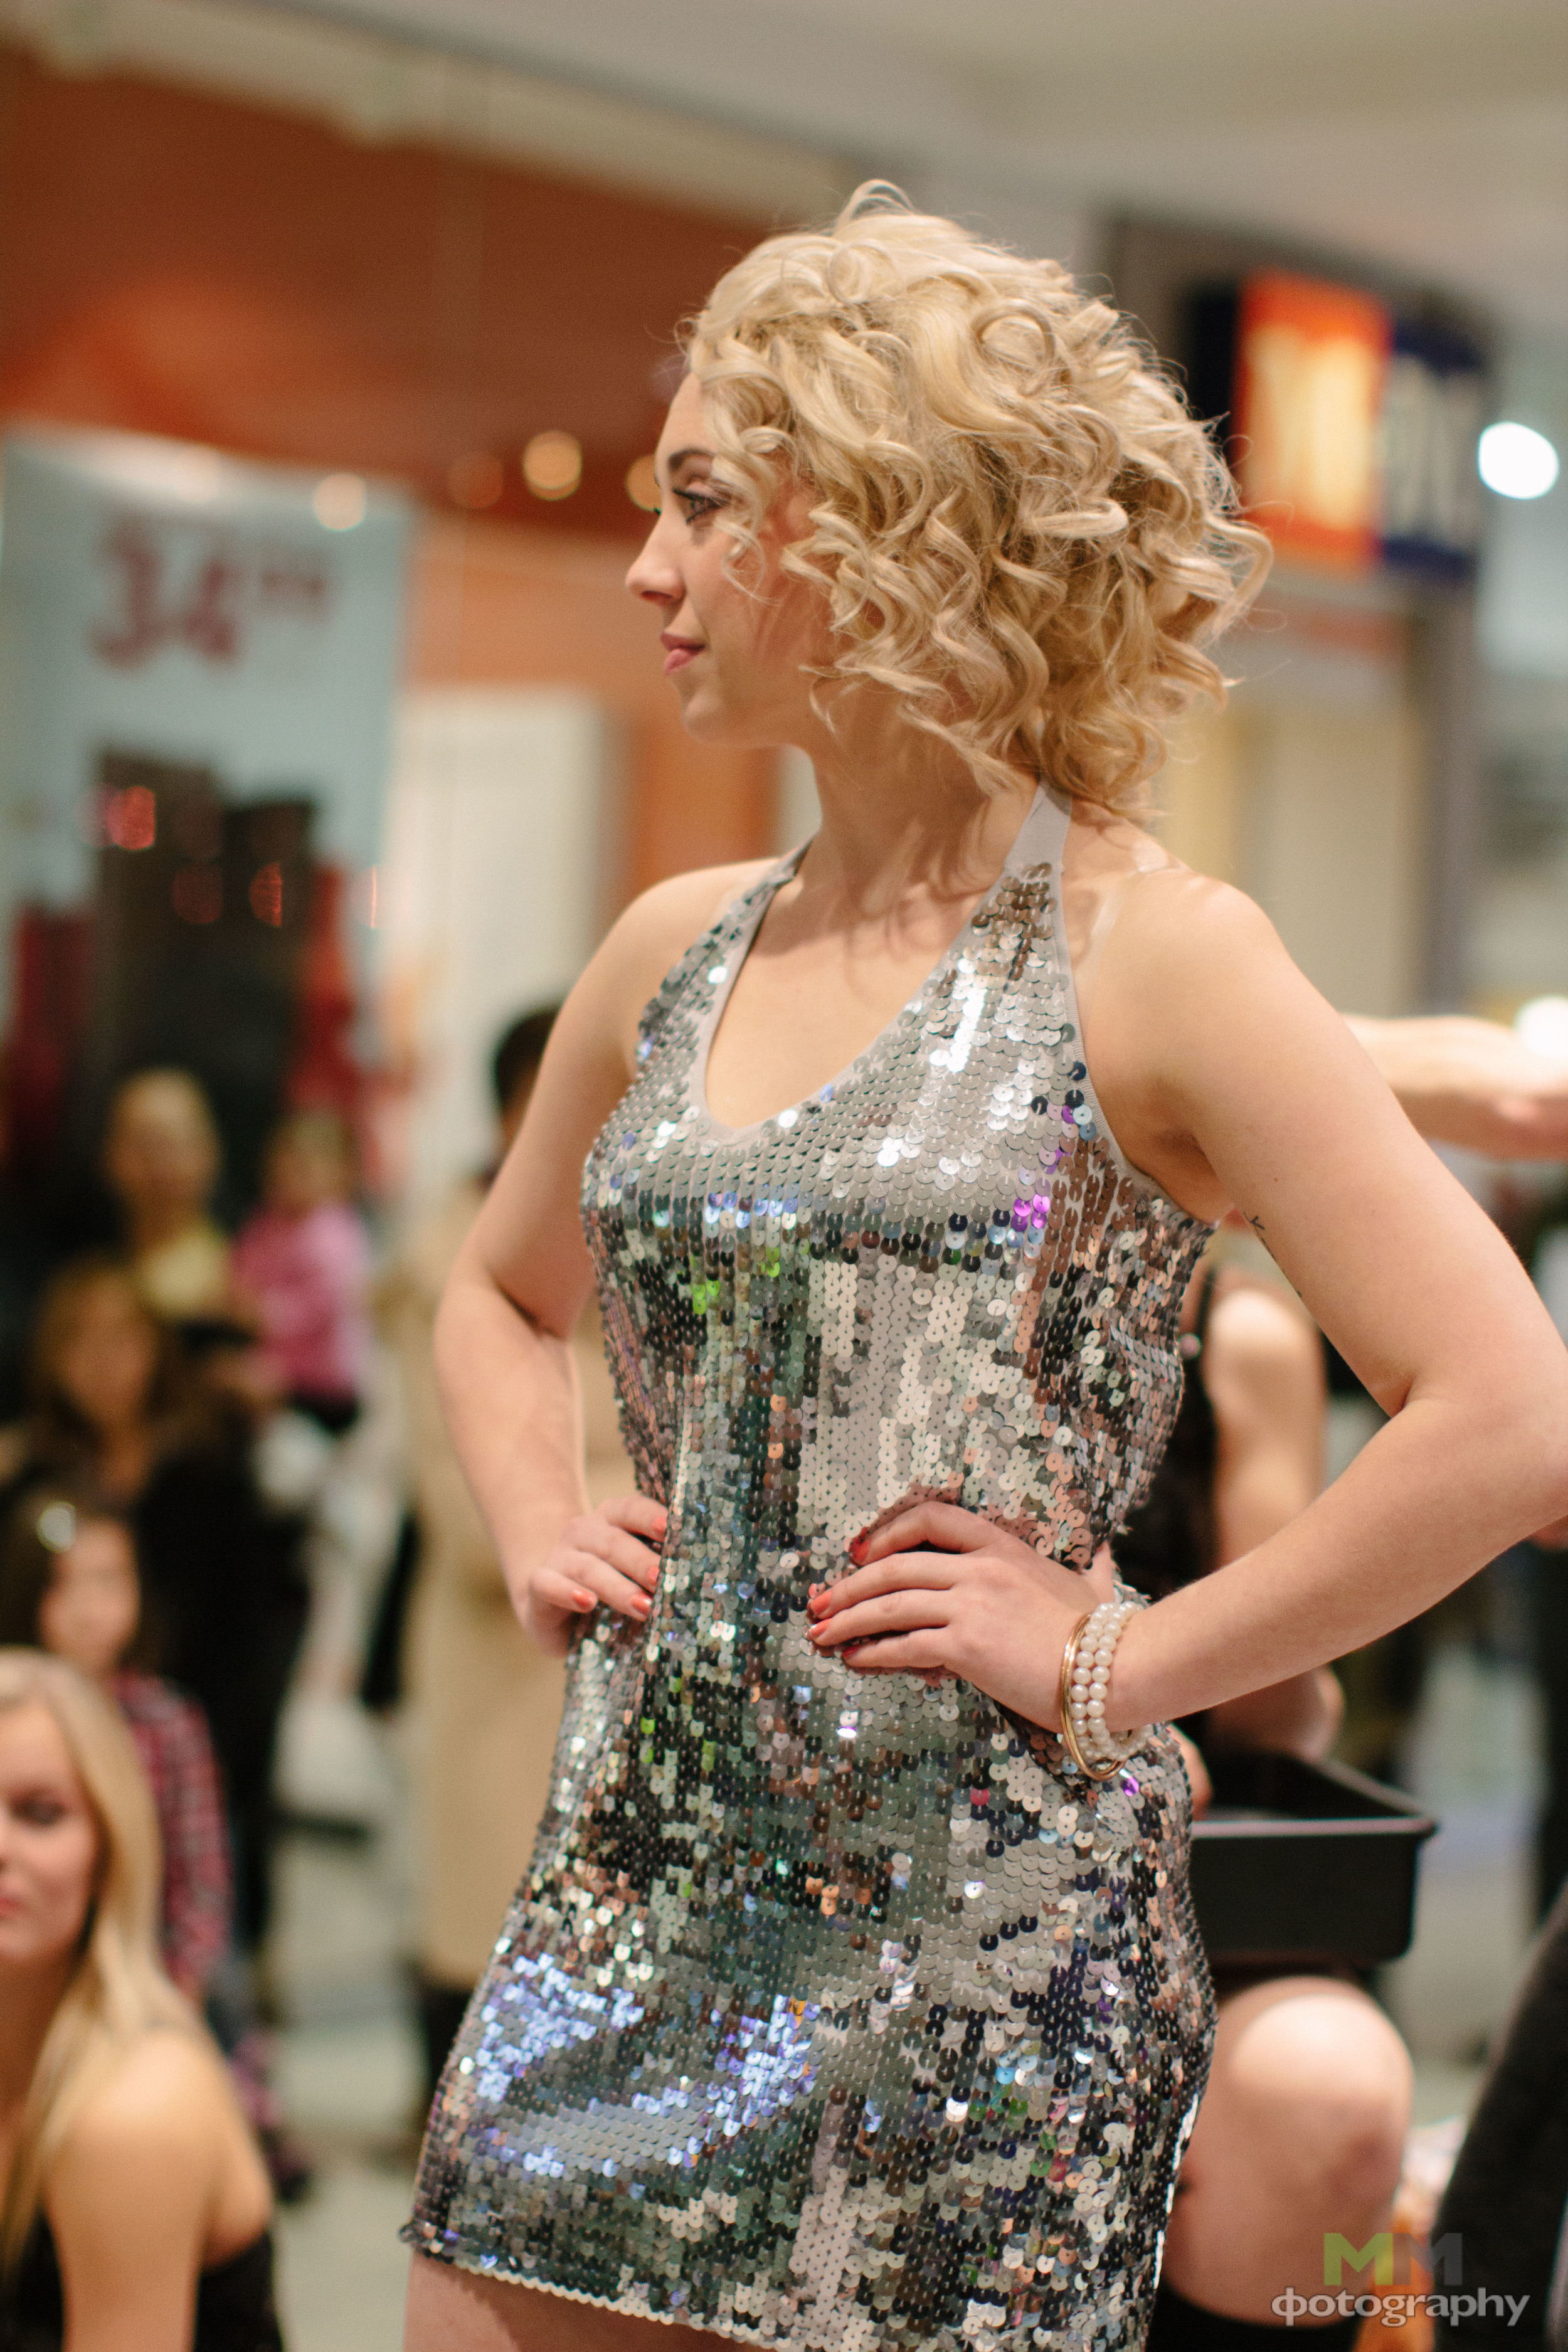 Glitter Fundraiser 2012 at Lawson Mall